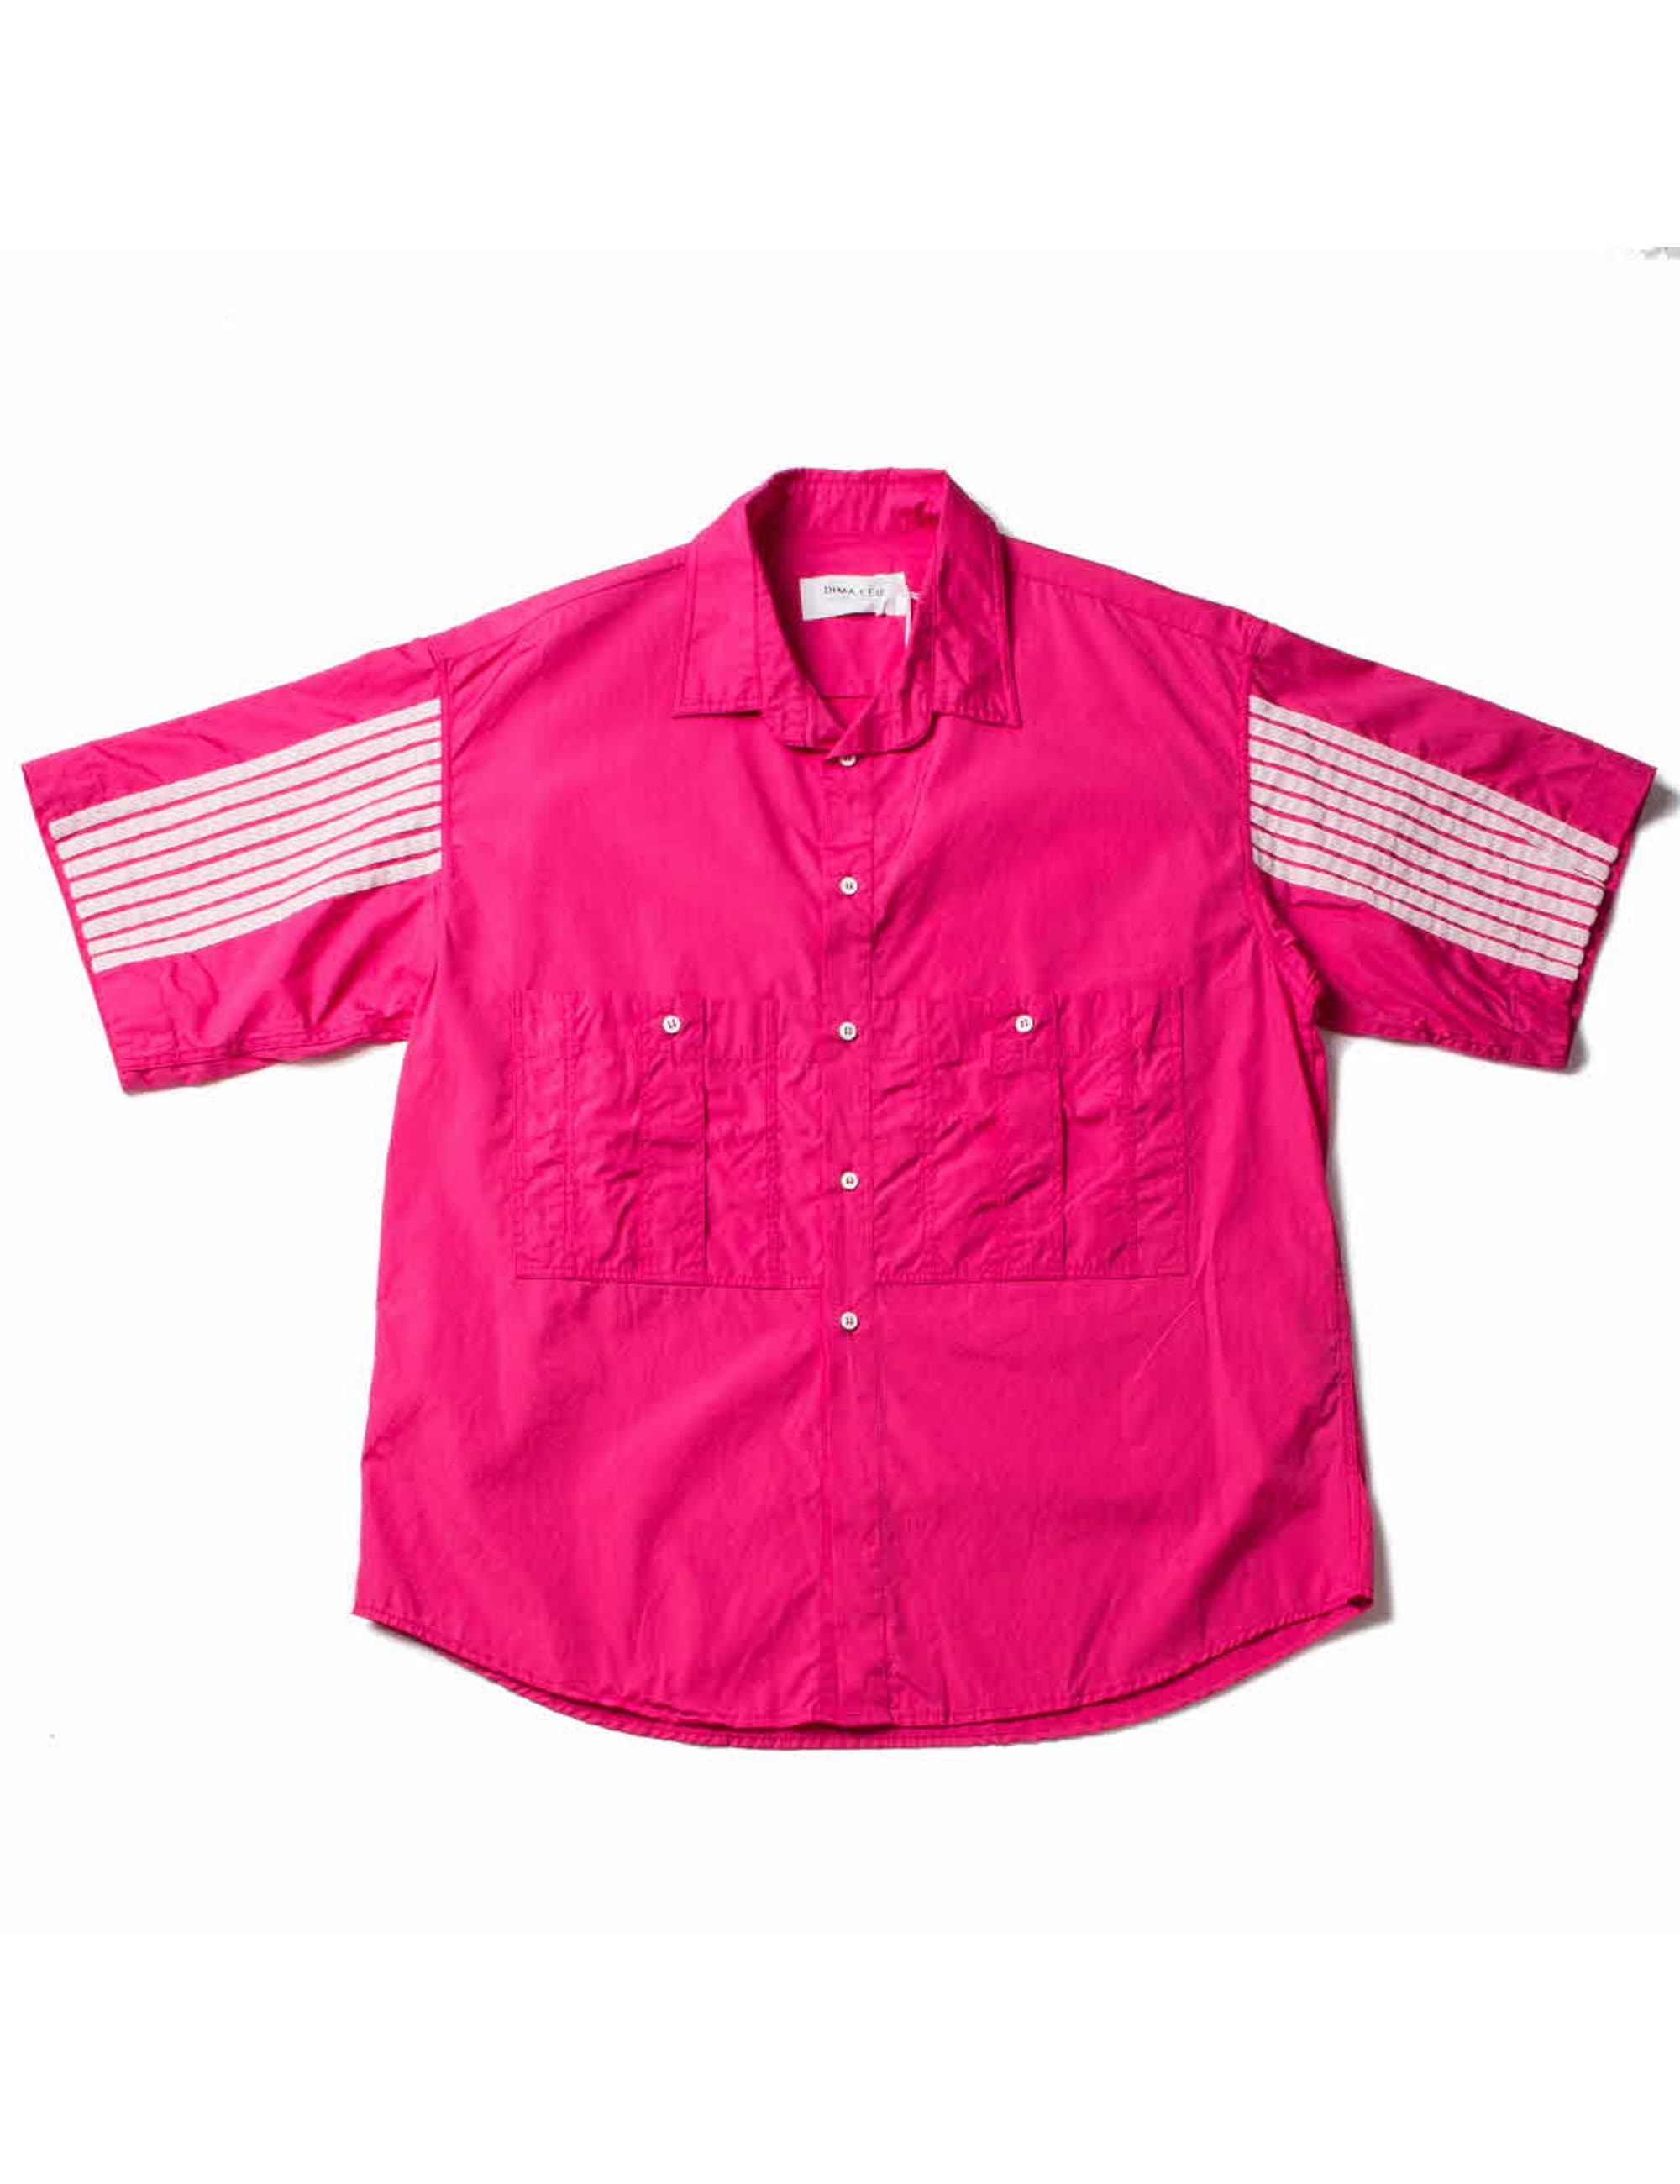 101E1A_PINK/WHITE STRIPES